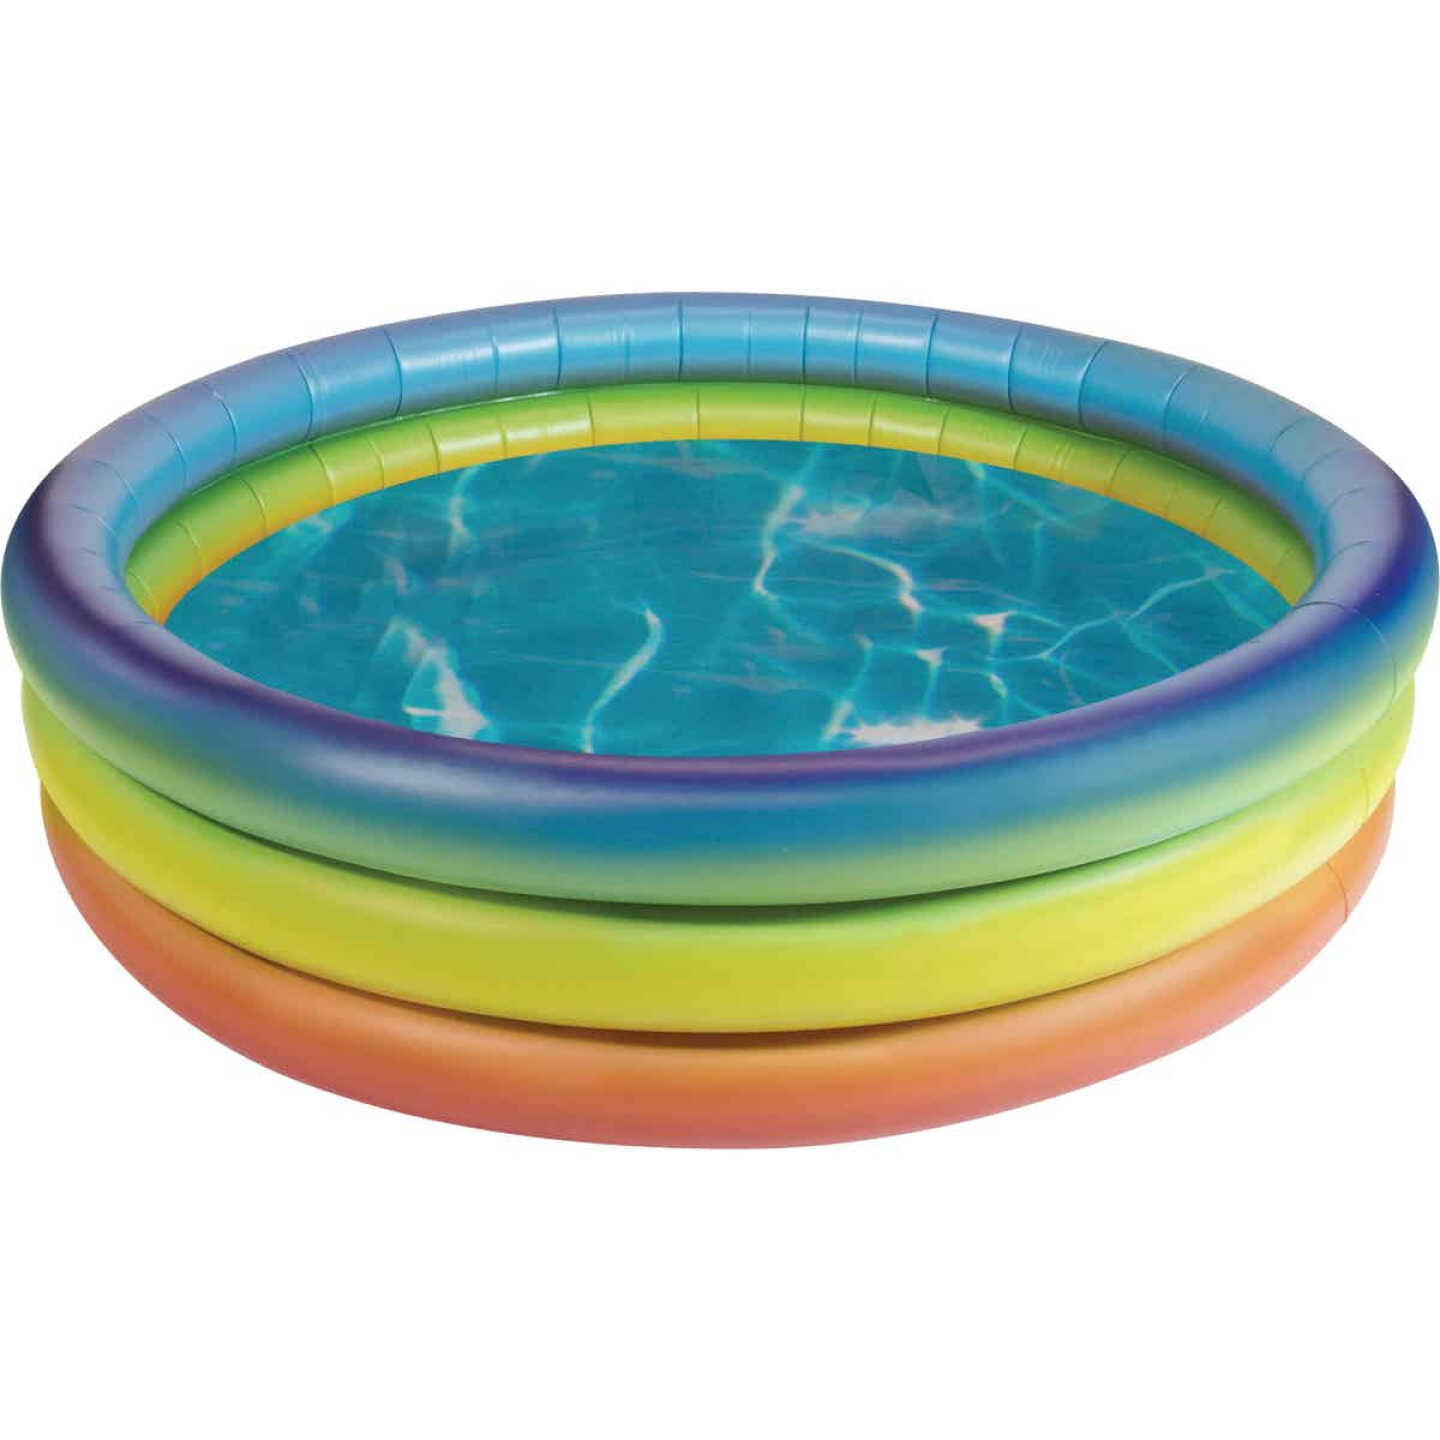 PoolCandy 15 In. D. x 60 In. Dia. Rainbow Haze Inflatable Sunning Pool Image 1